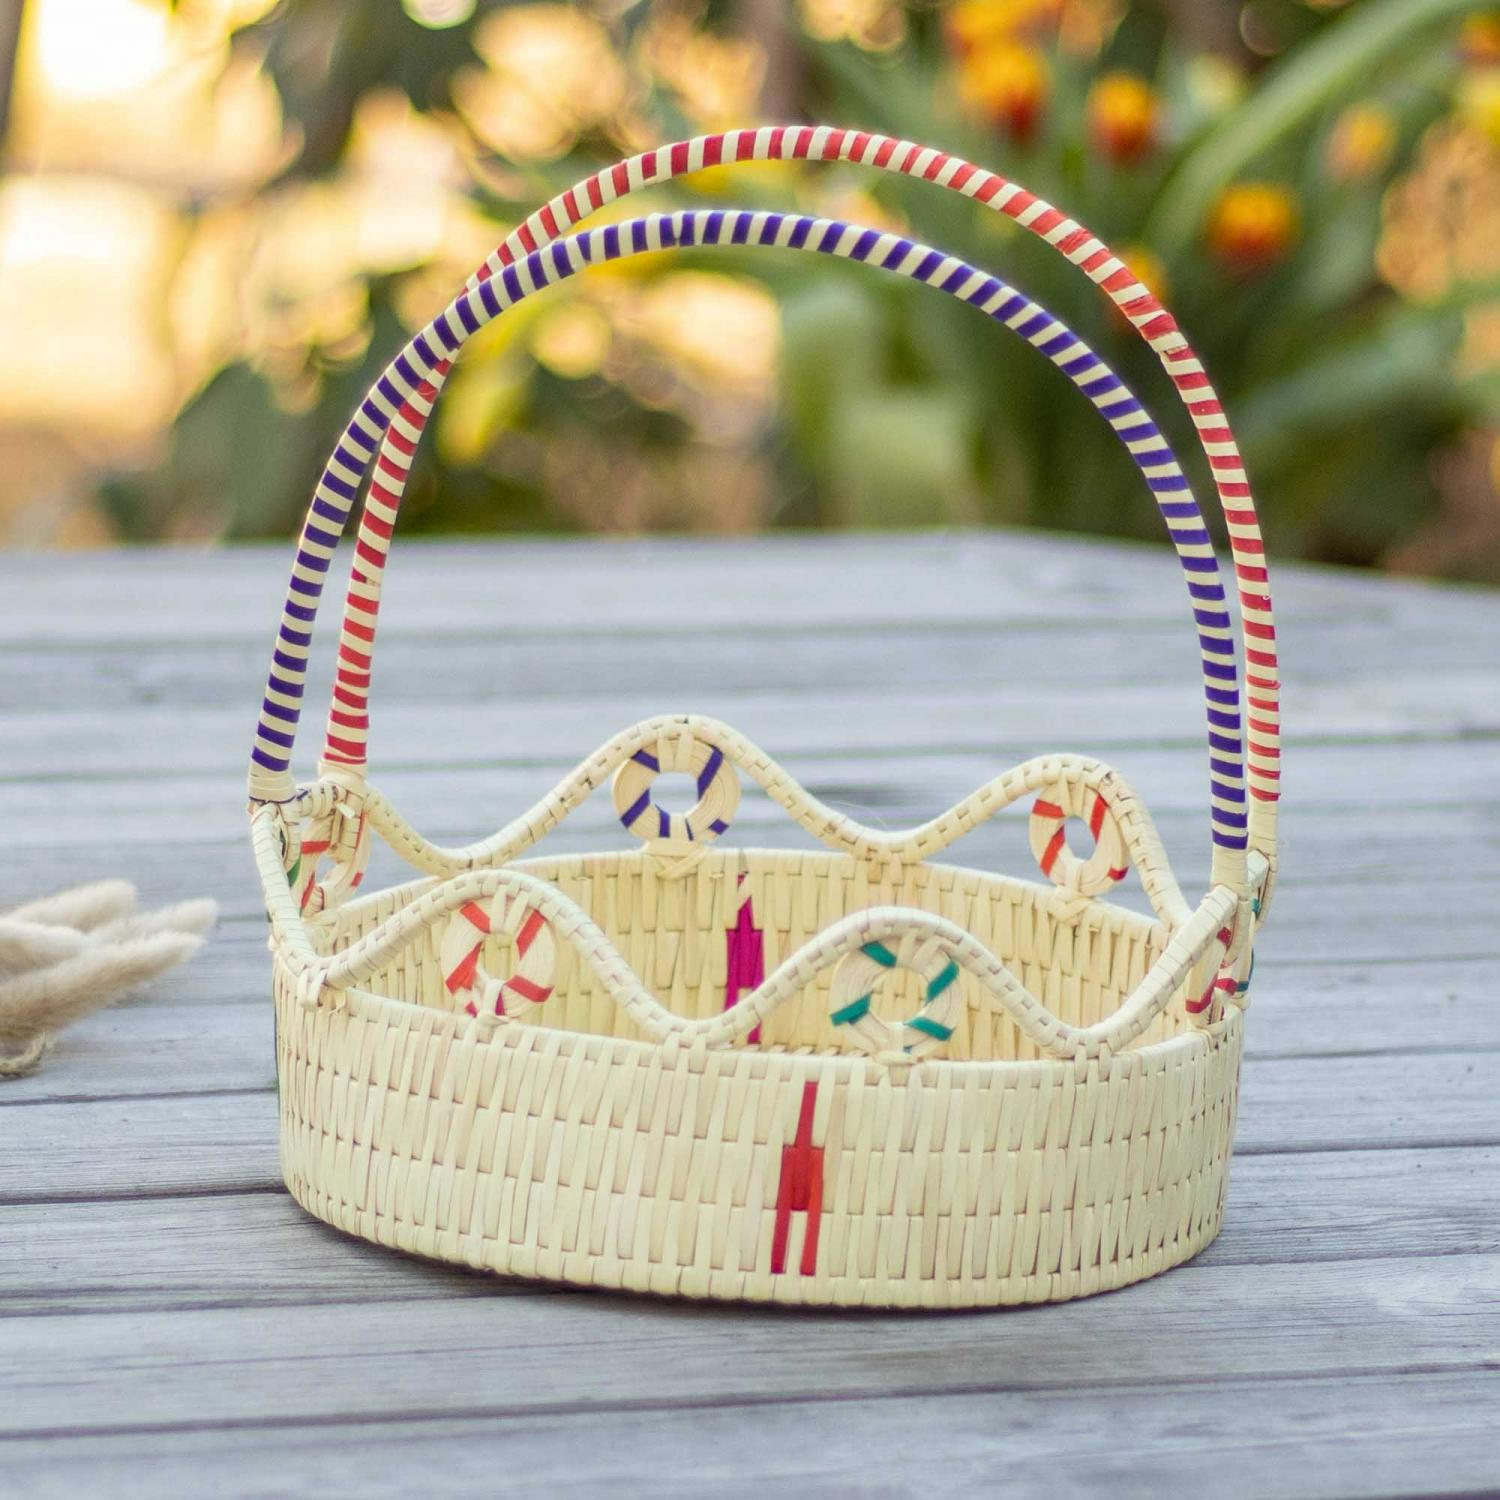 Palm leaf and golden grass basket with red and blue handle